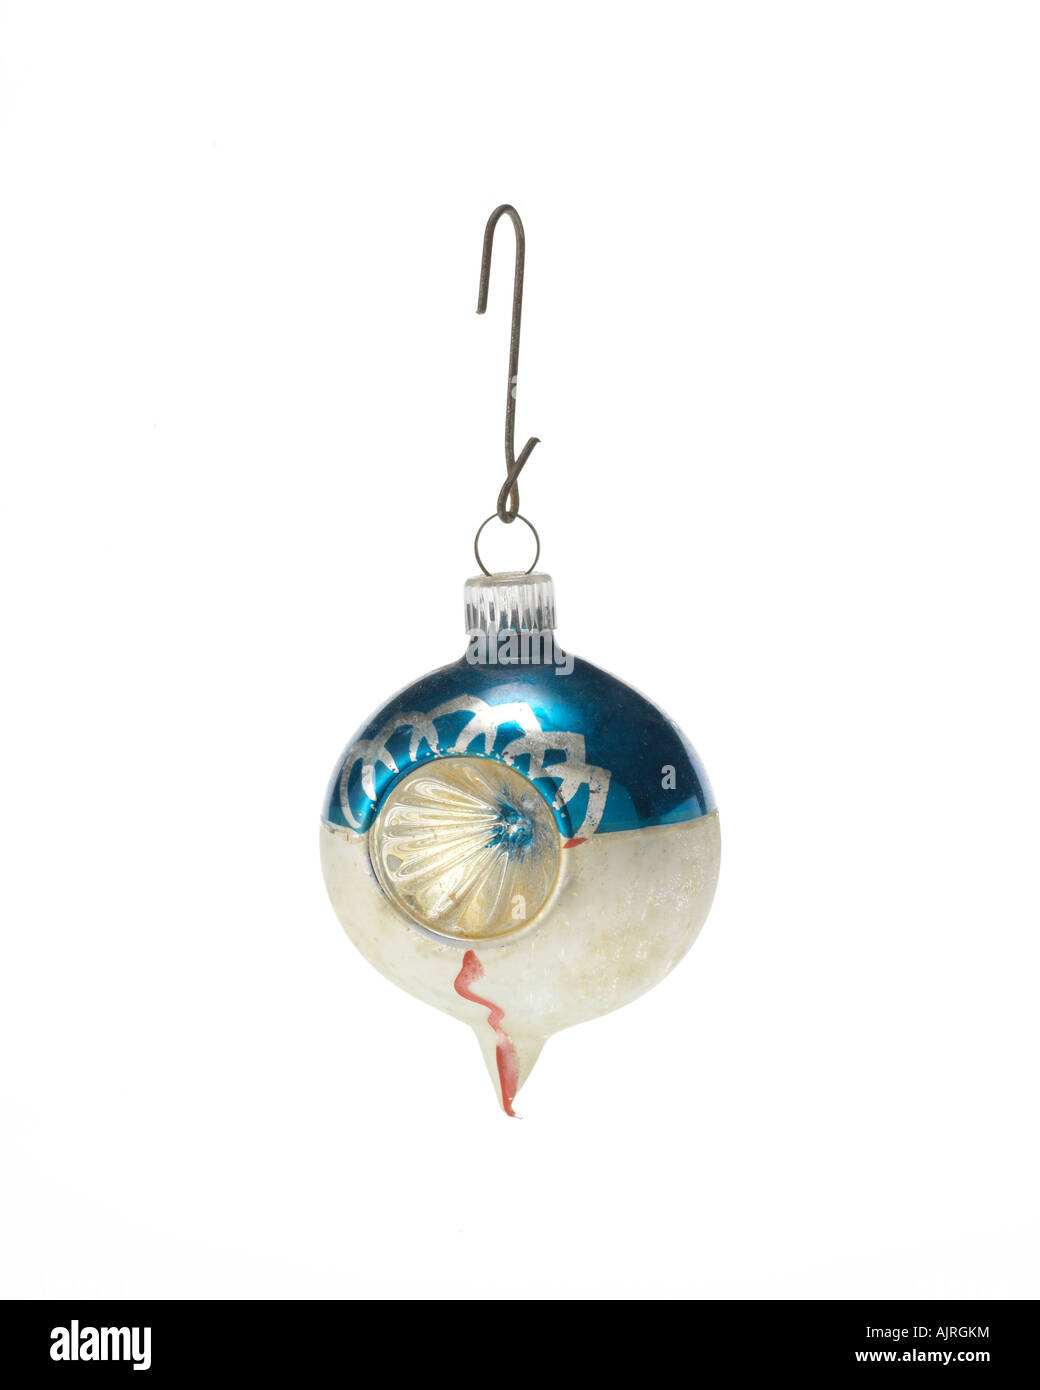 Stock Photo  Vintage Christmas Ornament Hanging On Hook